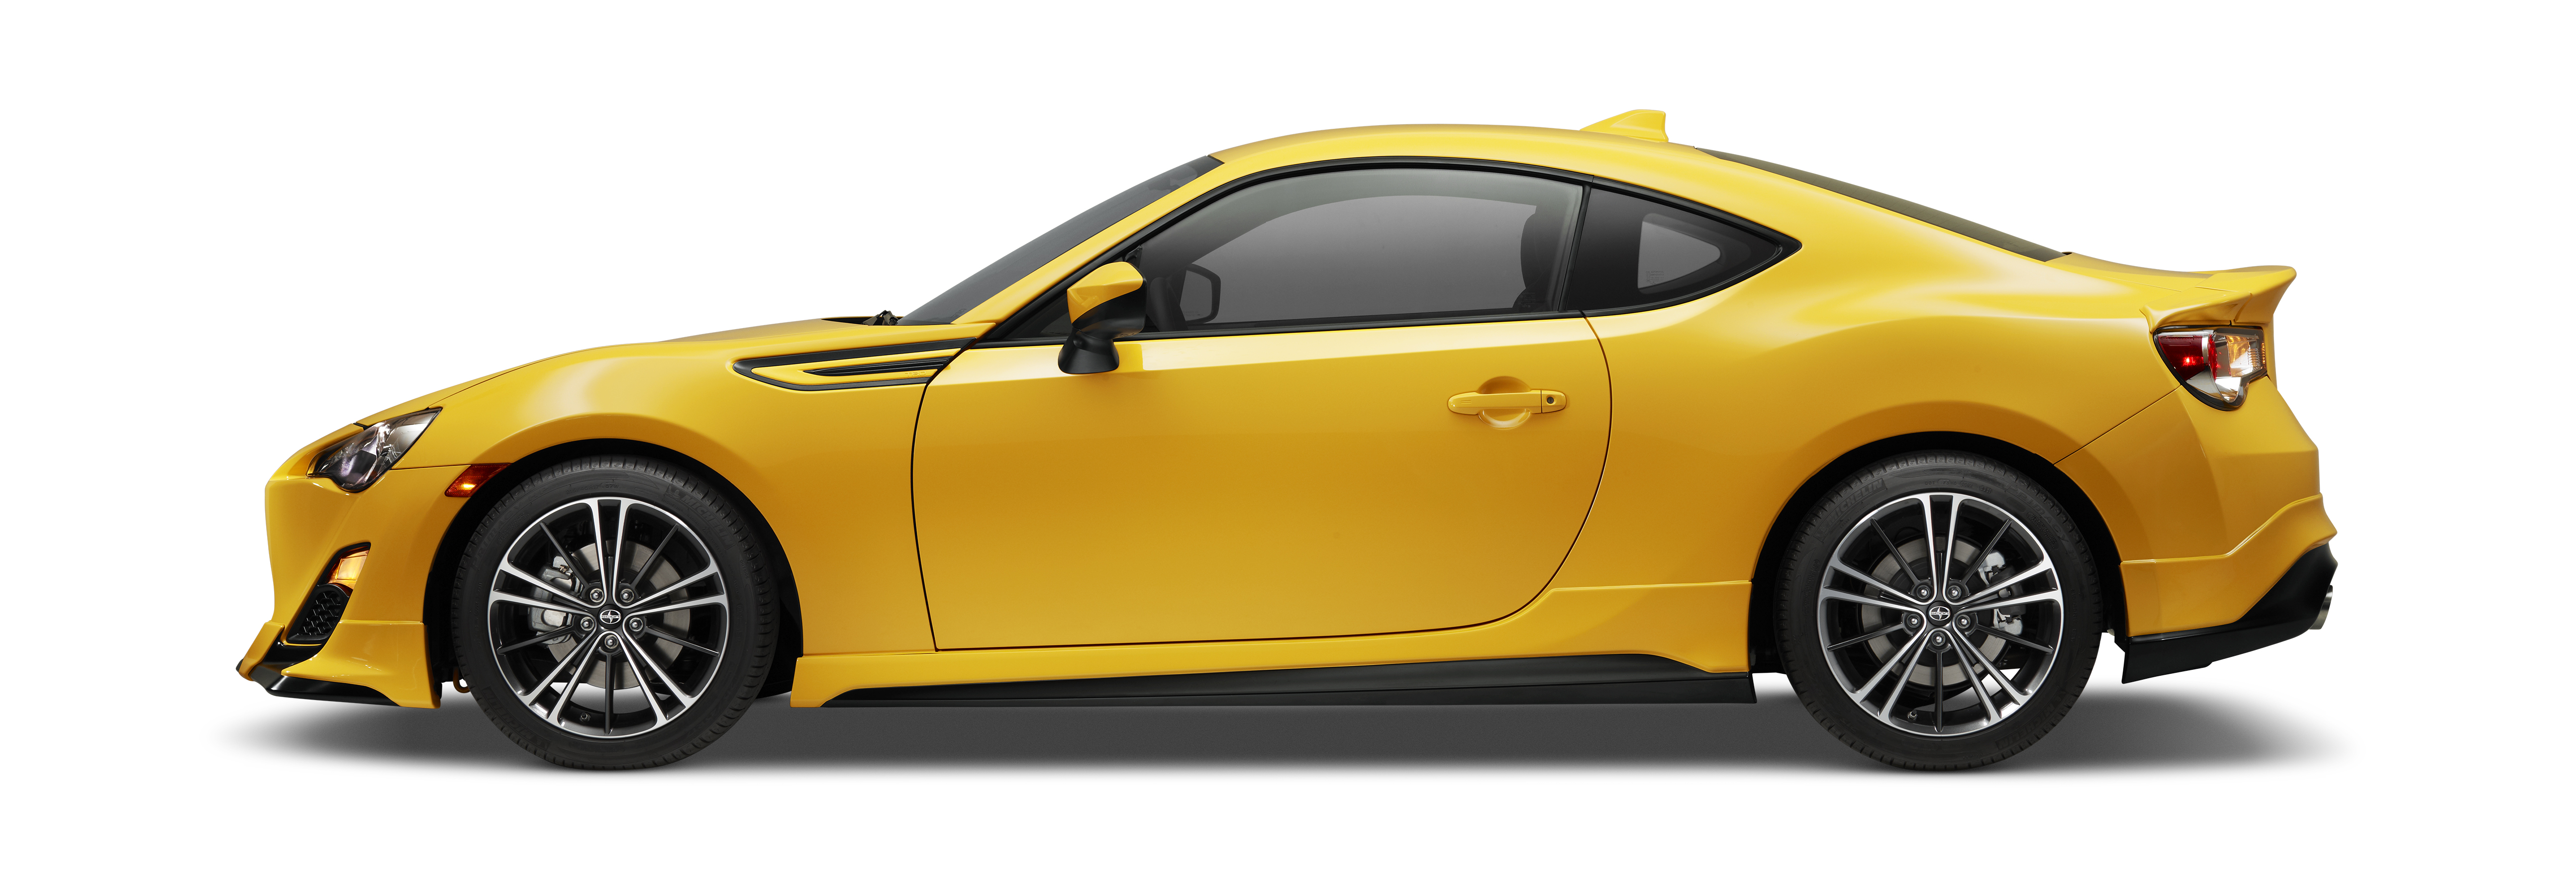 second generation scion fr s discussions ongoing